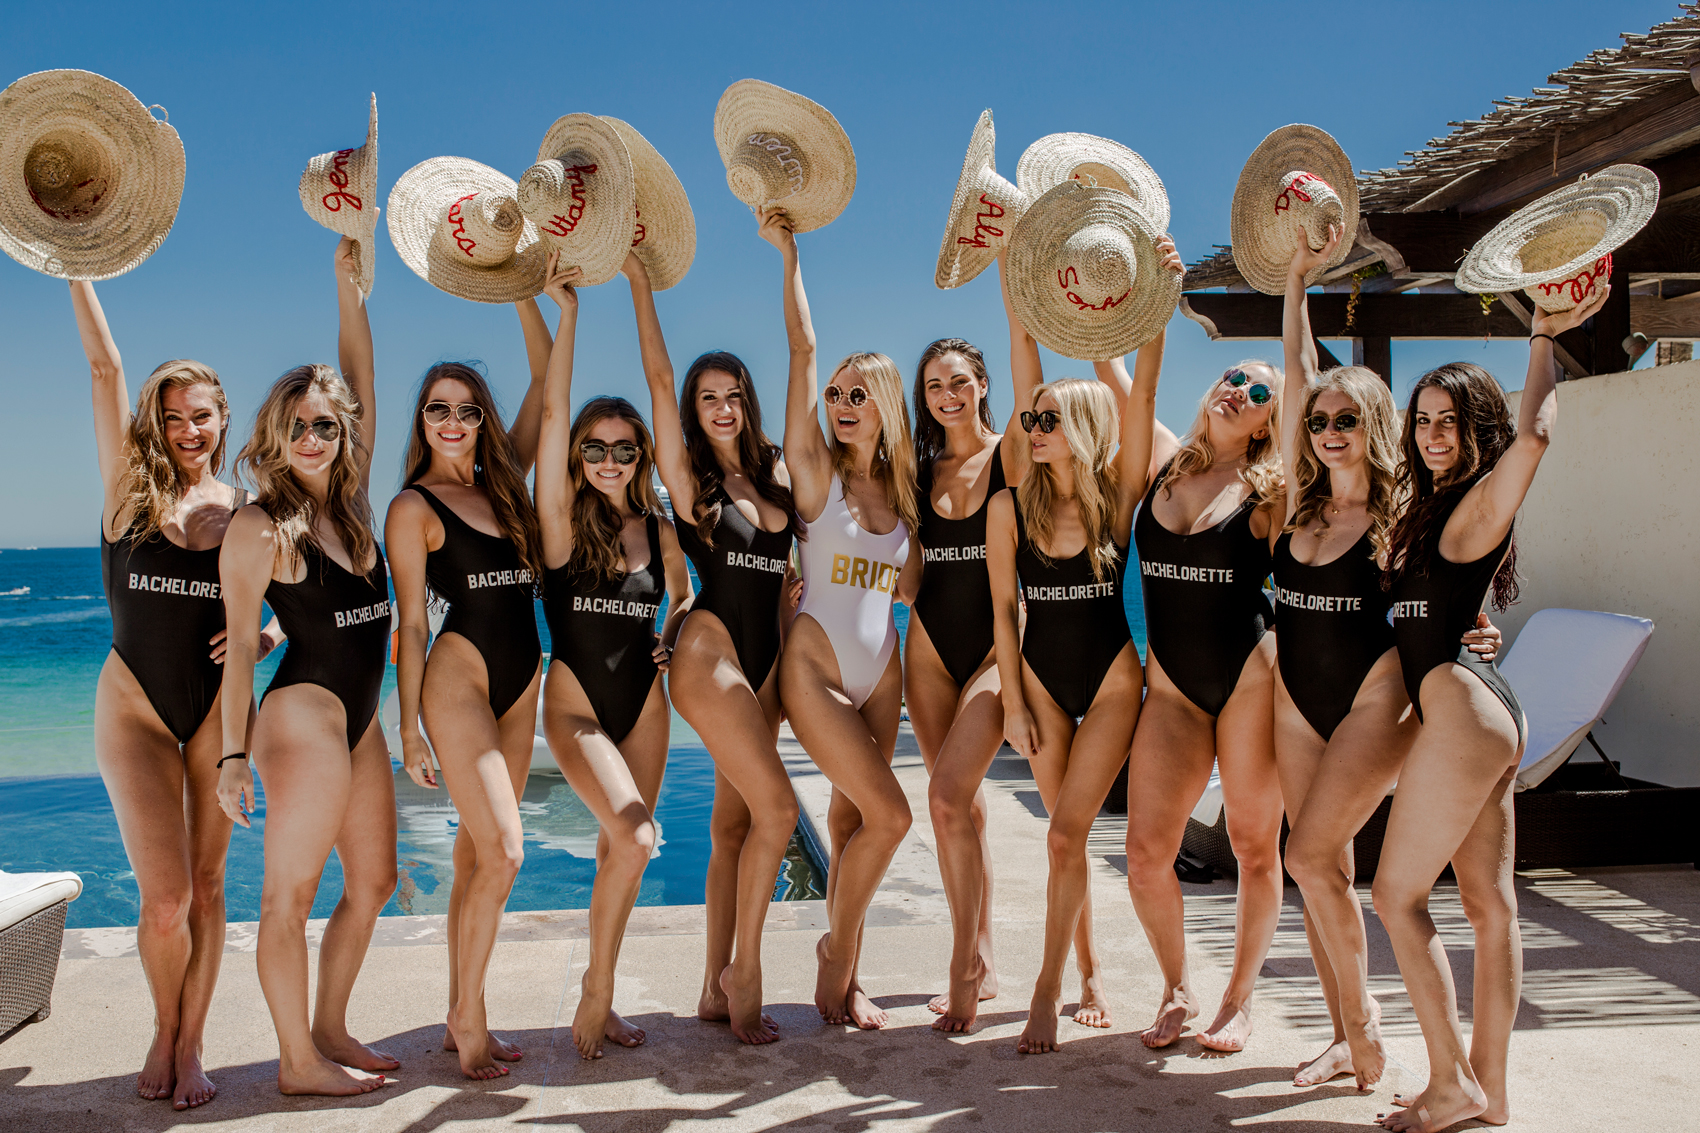 How Far in Advance Should You Tell Guests About the Bachelorette Party?